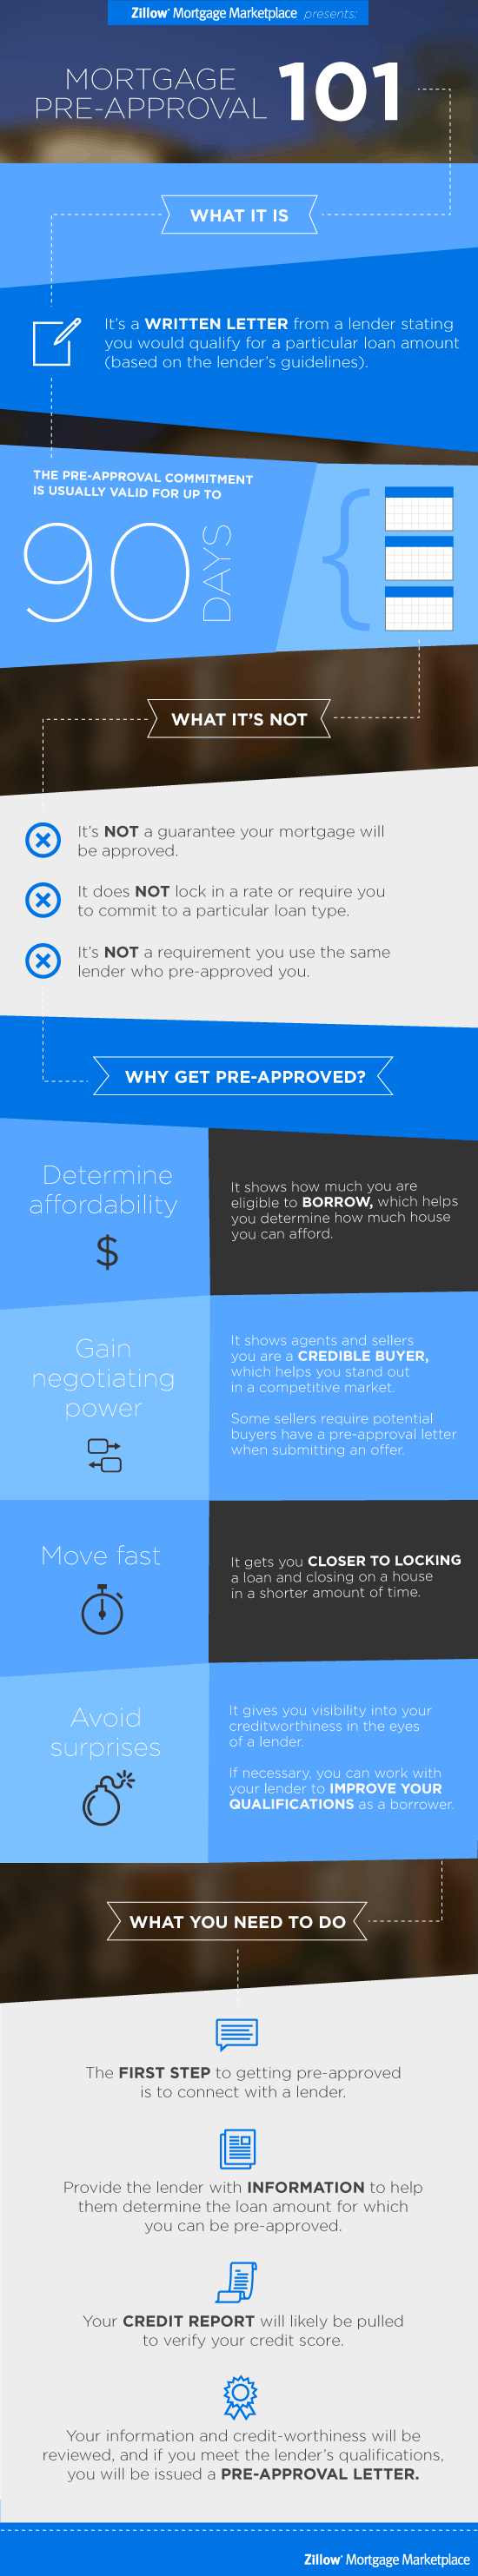 Mortgage Pre-Approval 101 Infographic